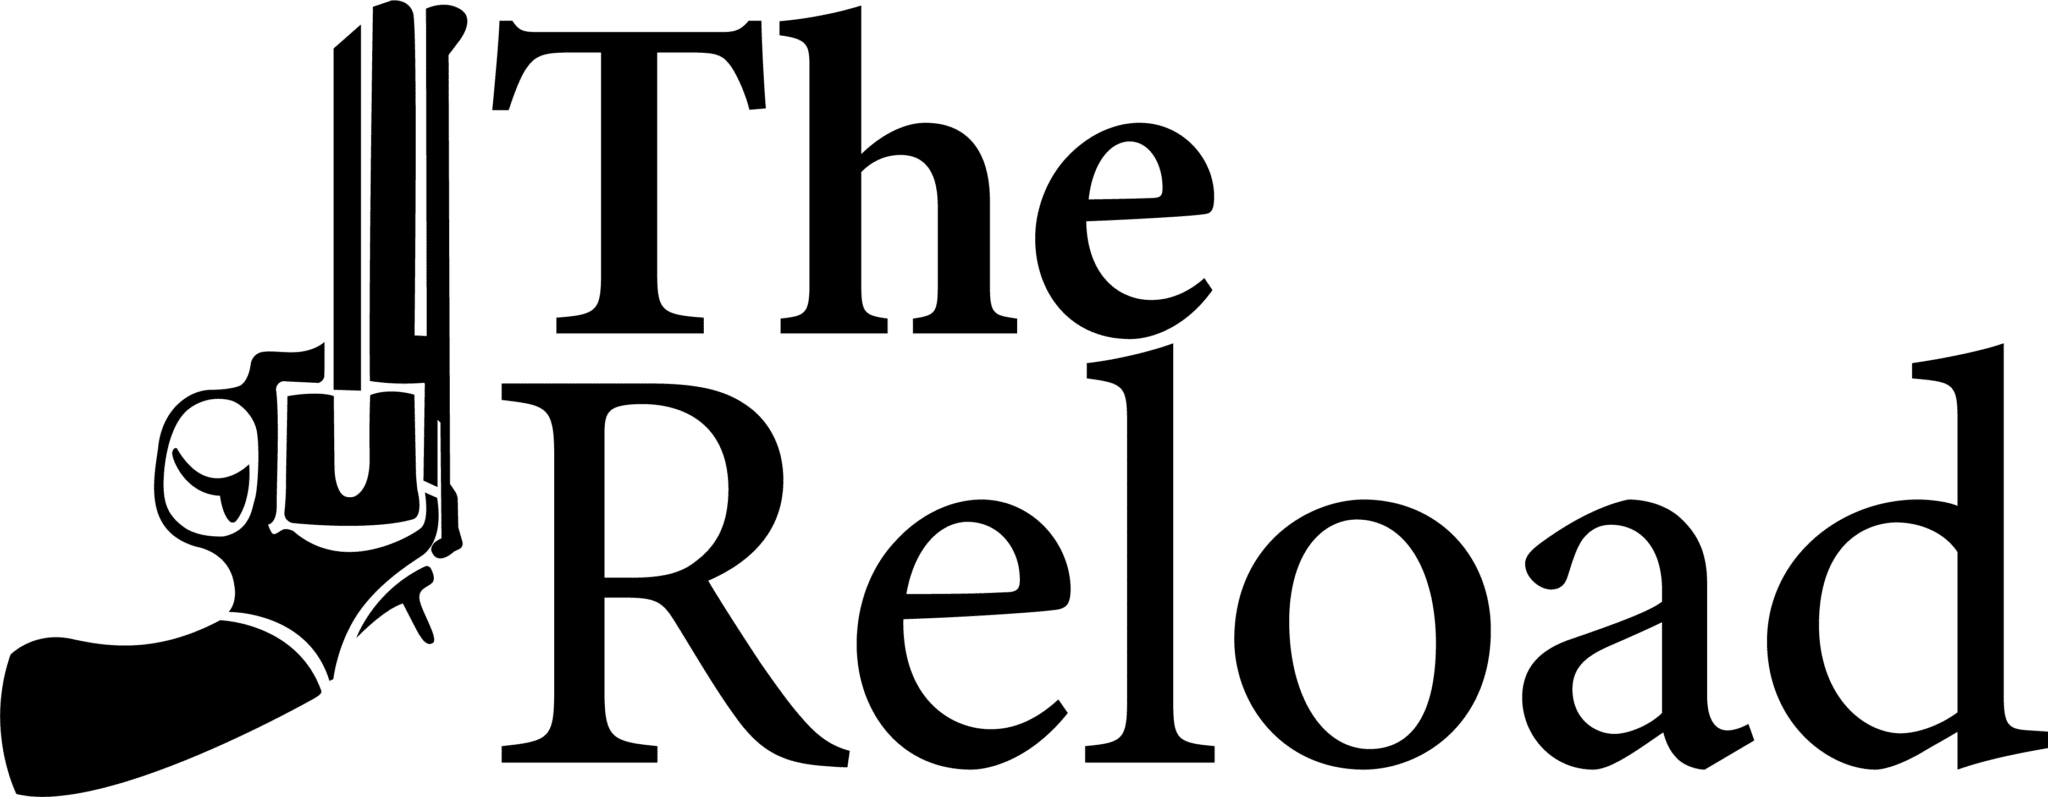 The Reload Logog